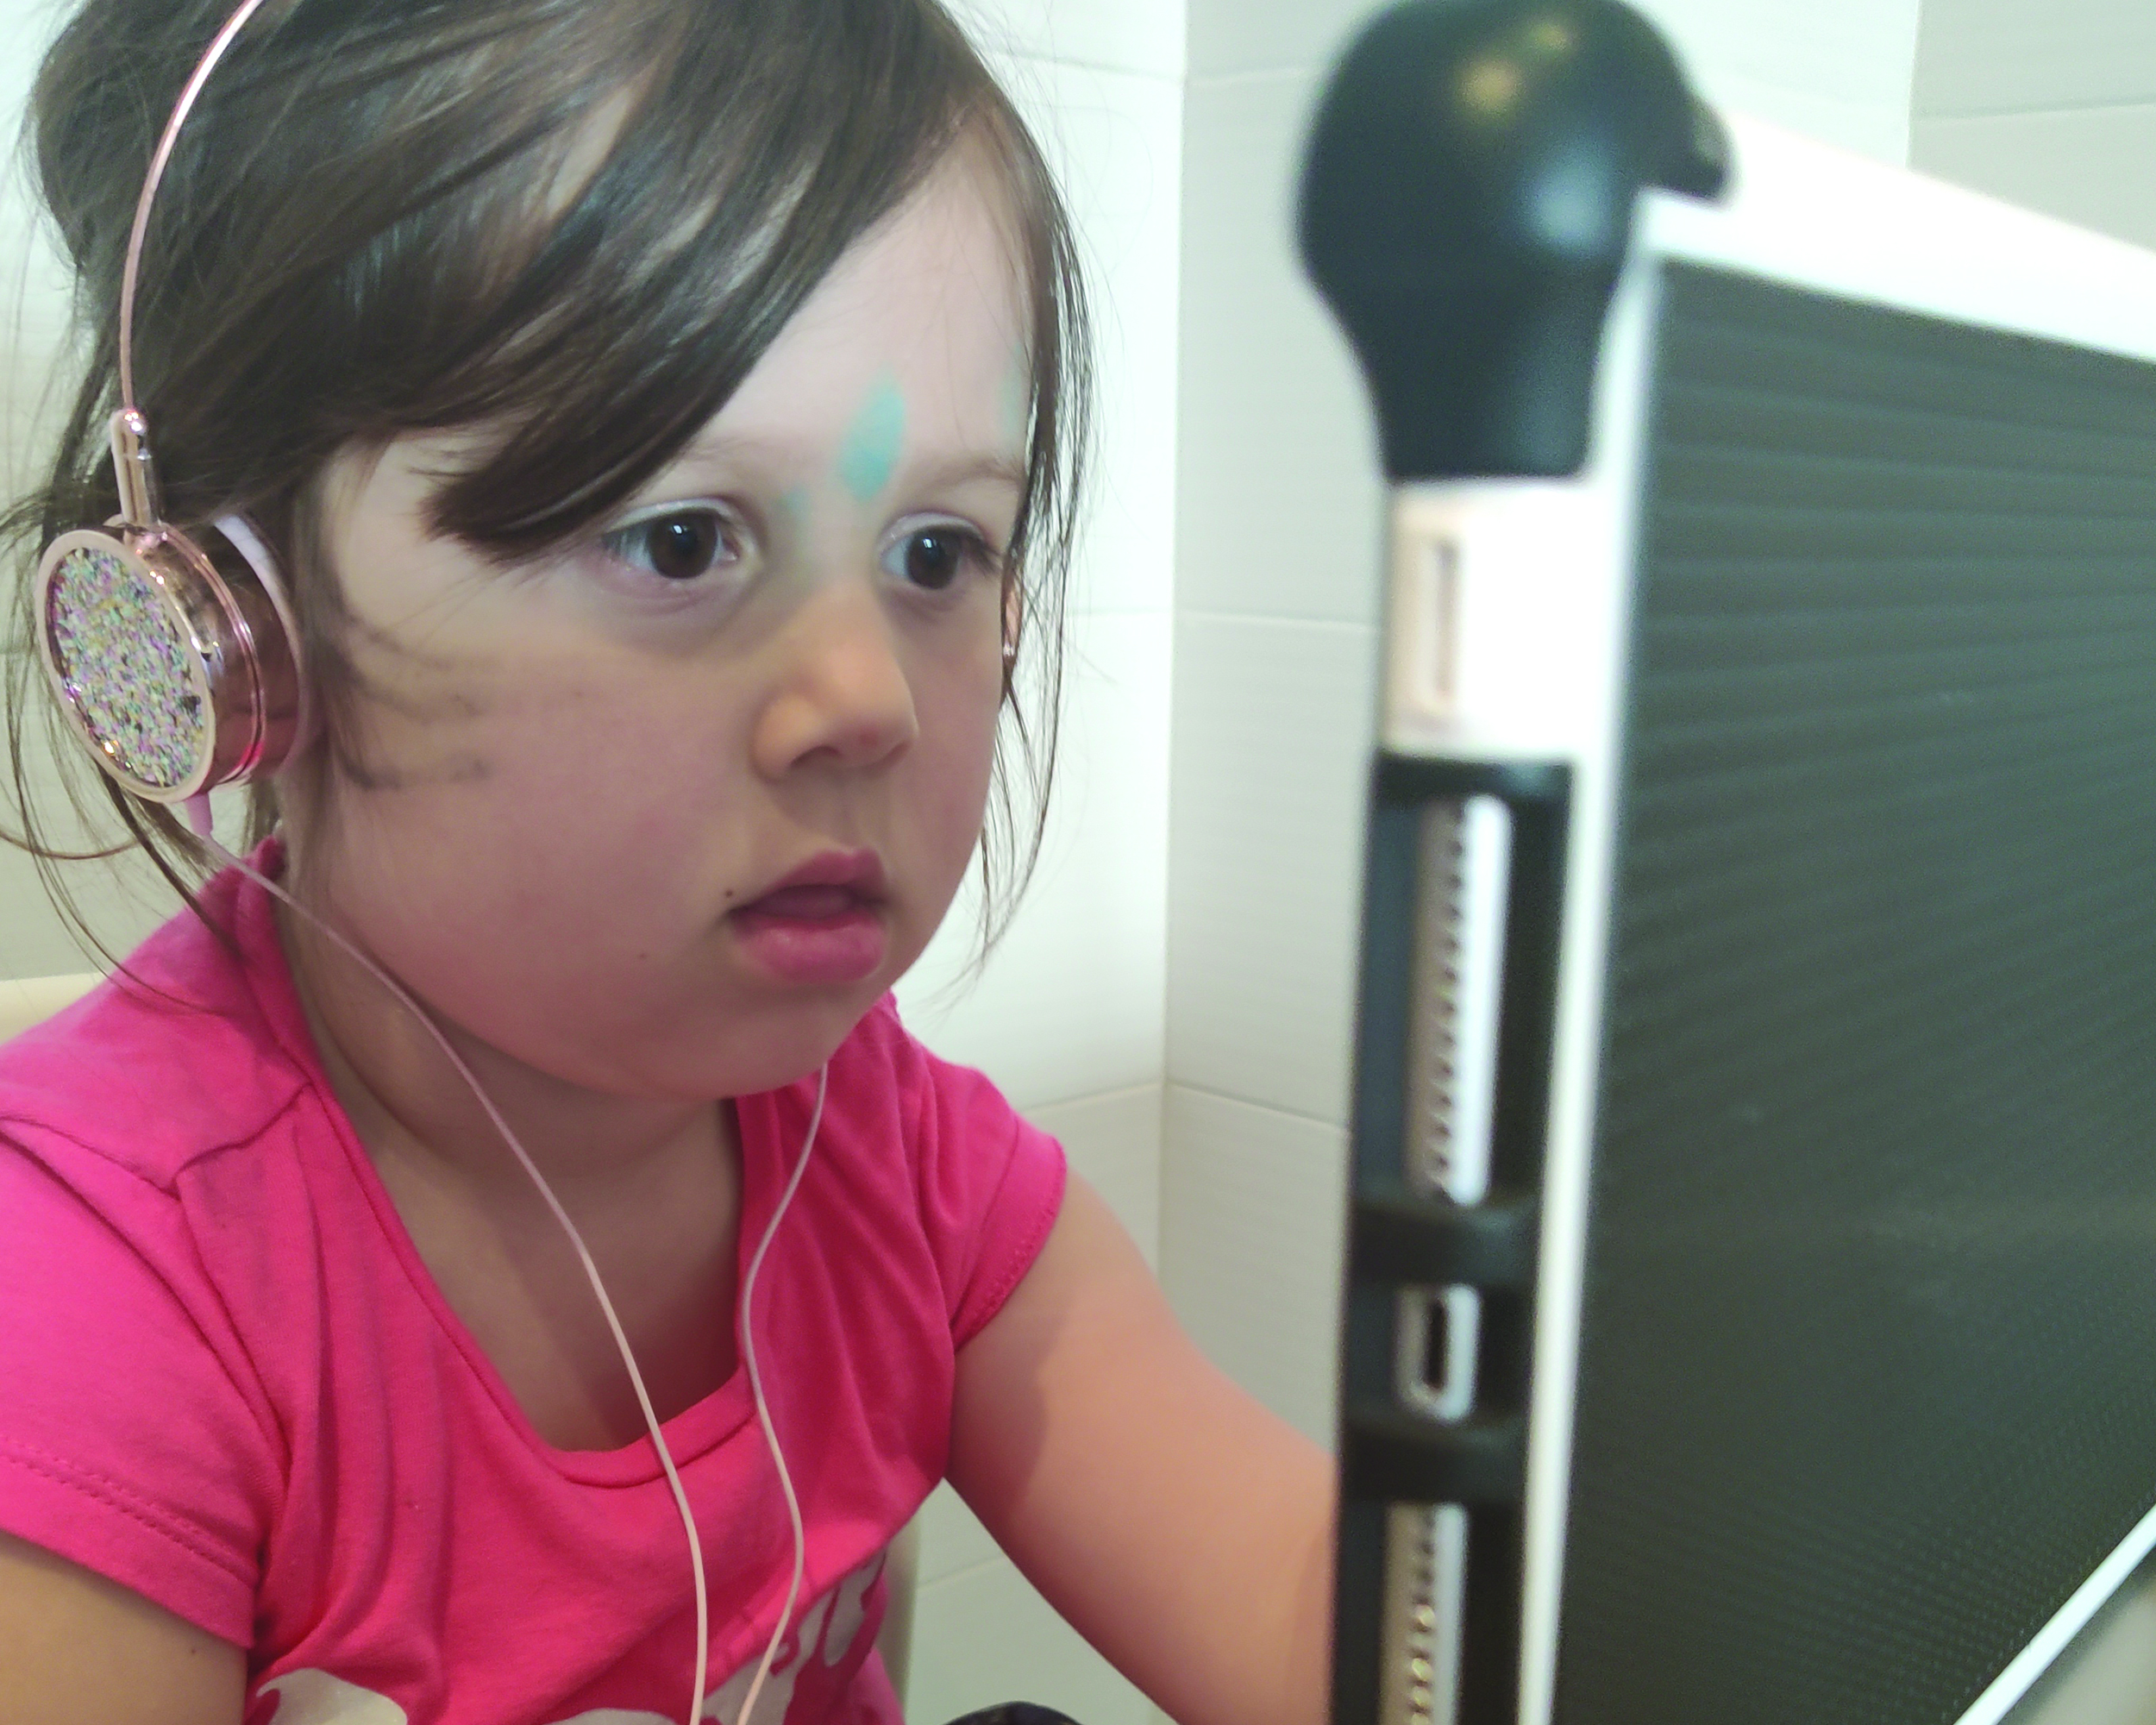 A four-year-old child doing virtual learning